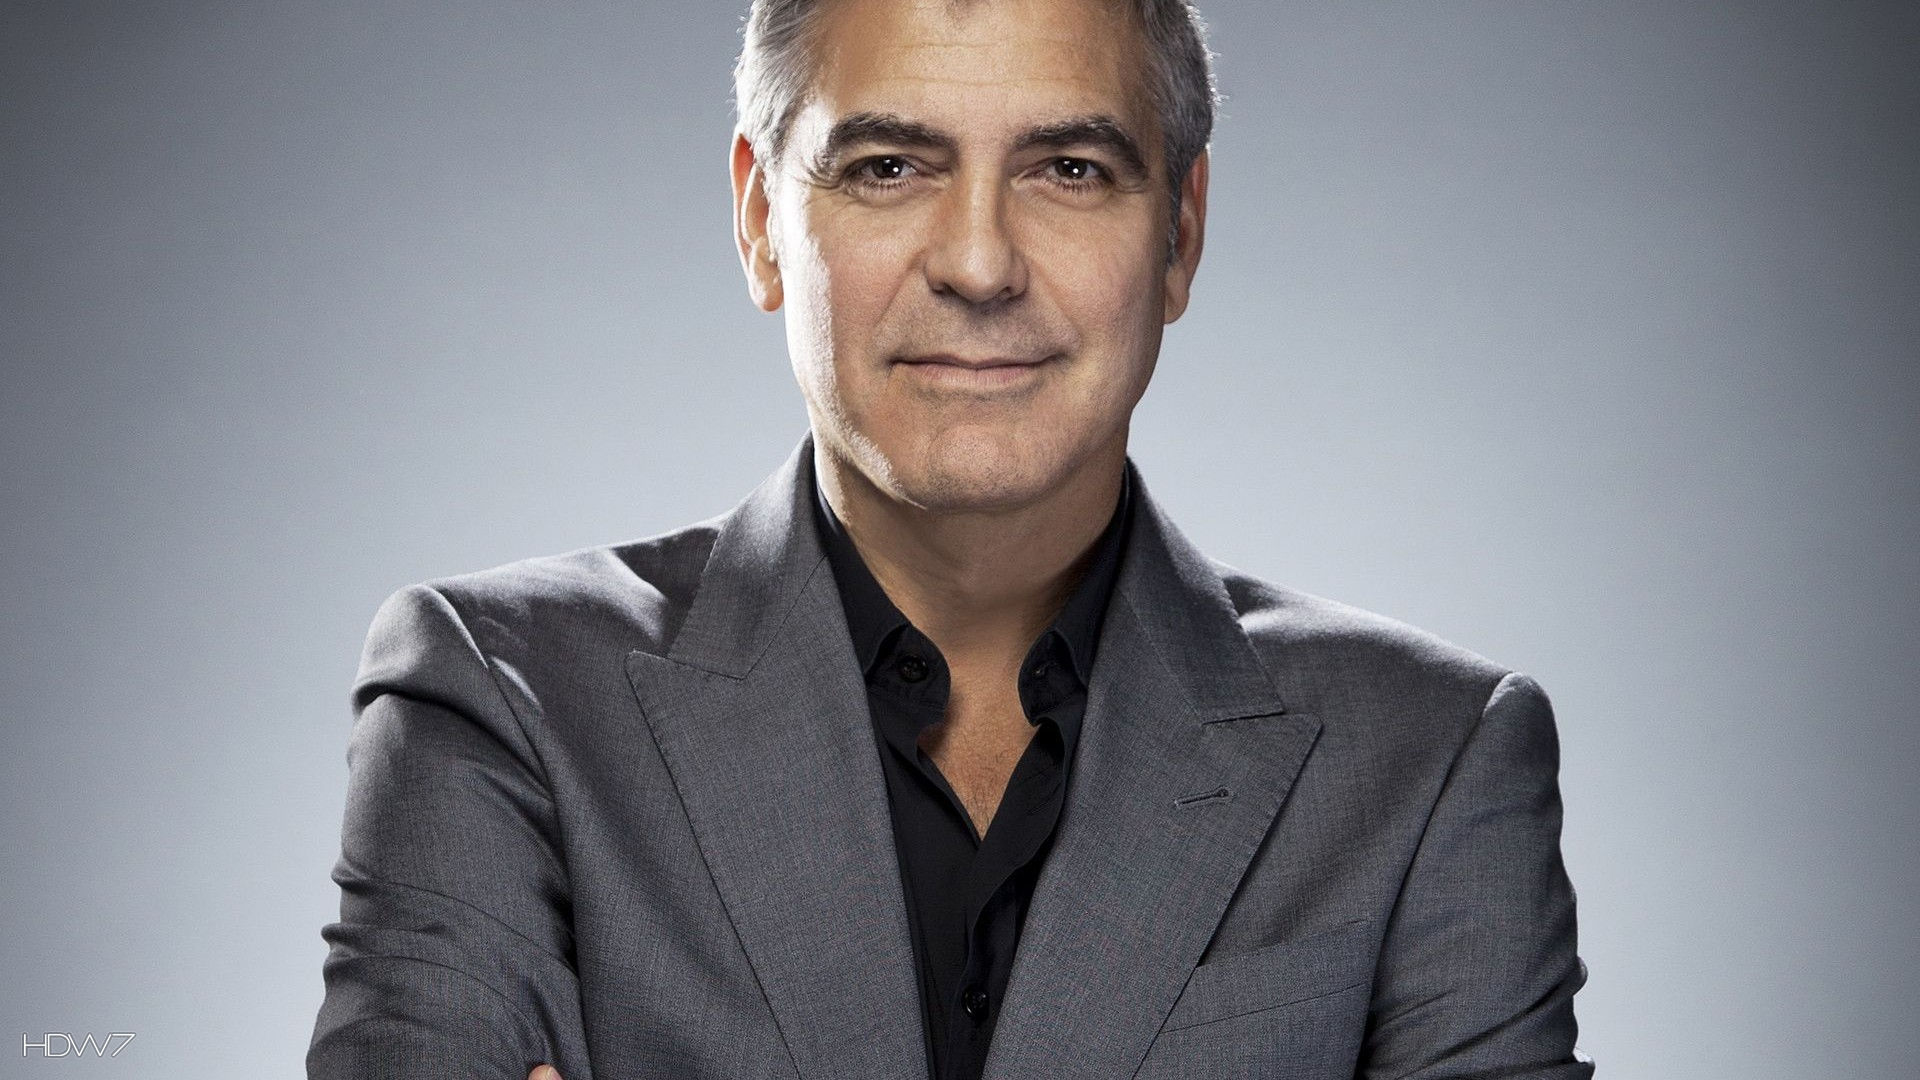 George Clooney Wallpapers and Background Images   stmednet 1920x1080